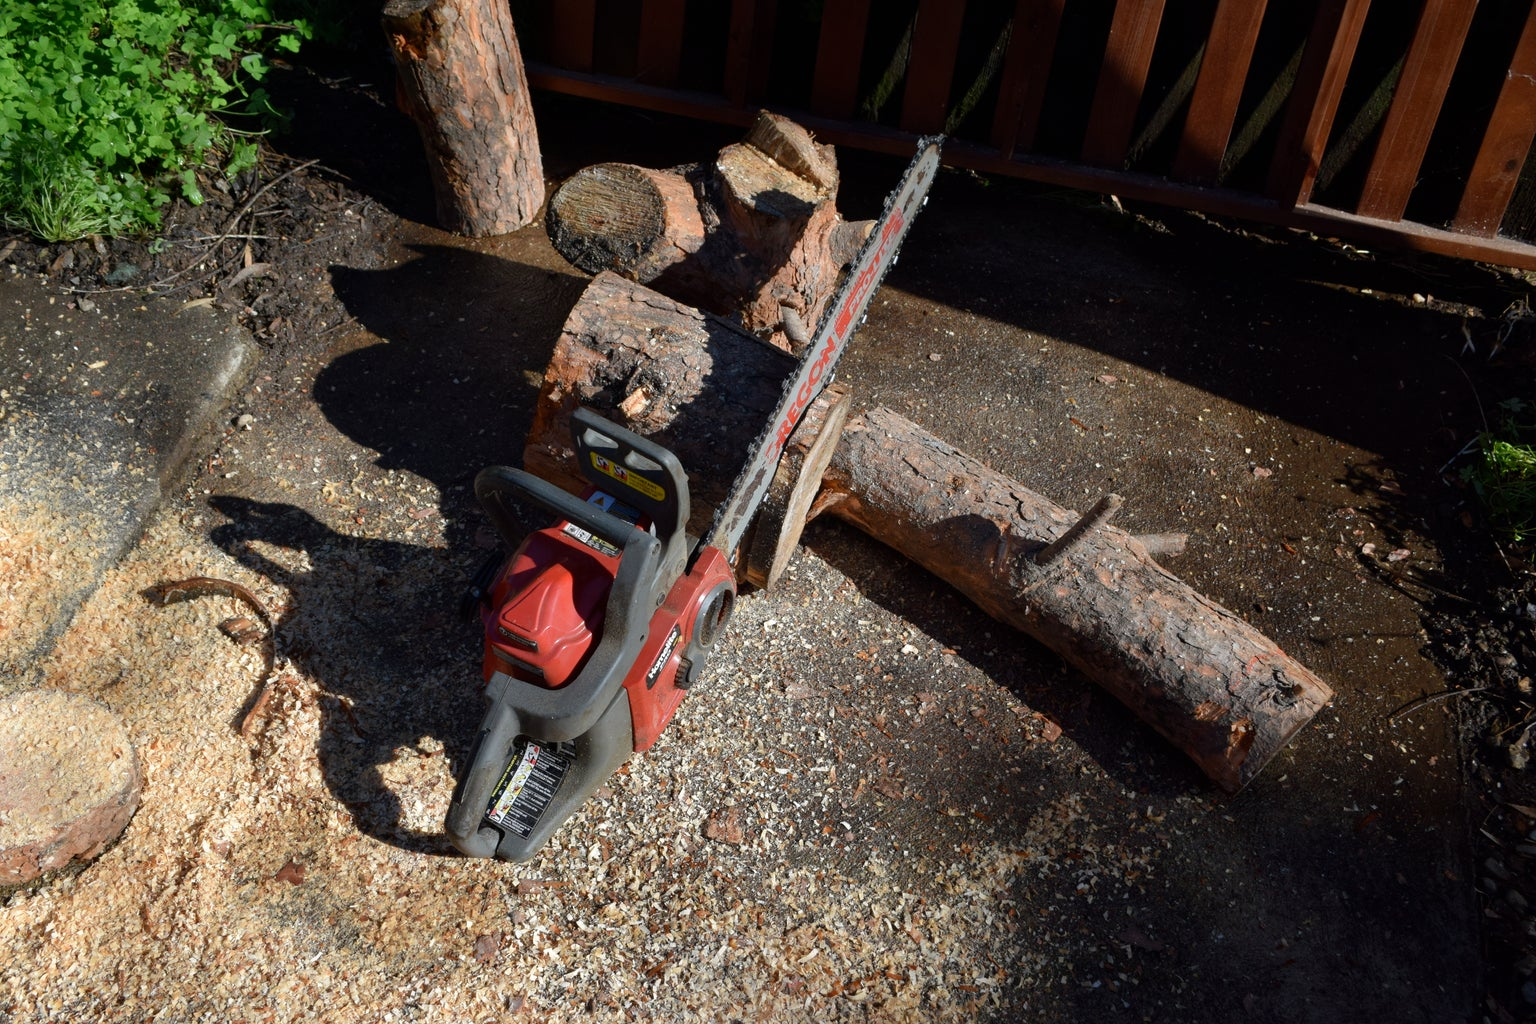 Clean Up Your Space and Cut Logs